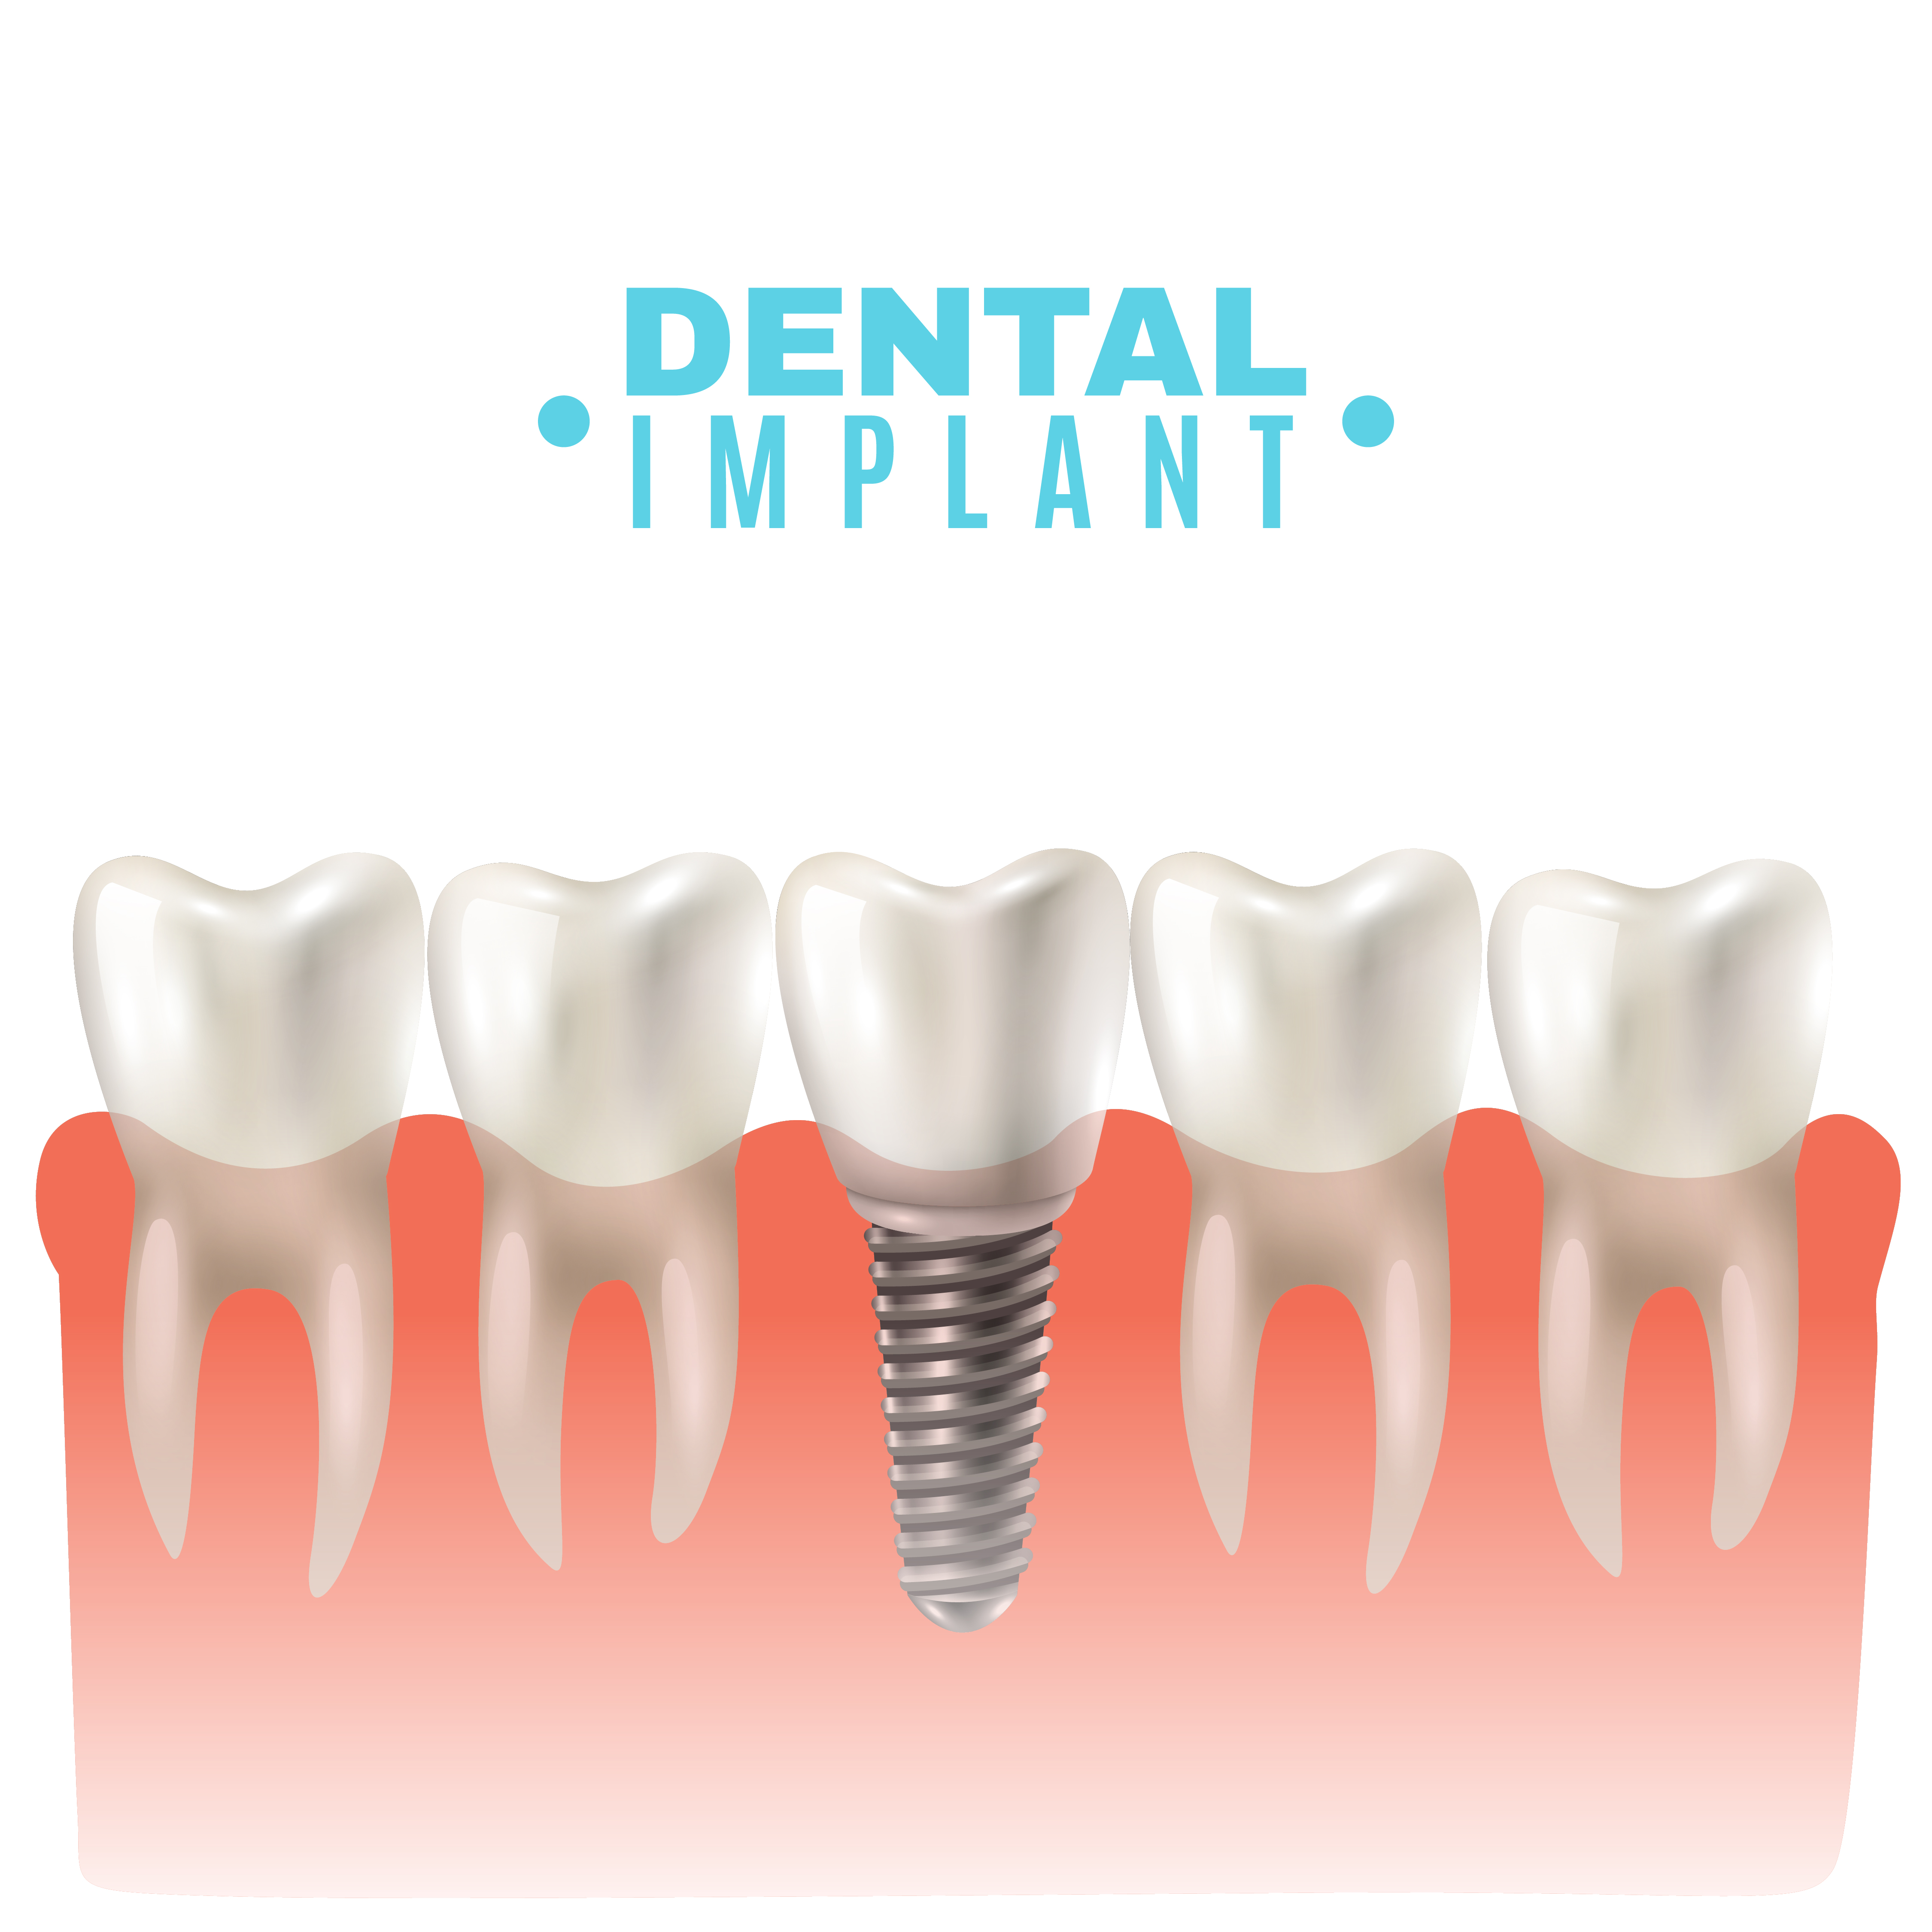 Dental Implant Model Side View Poster Download Free